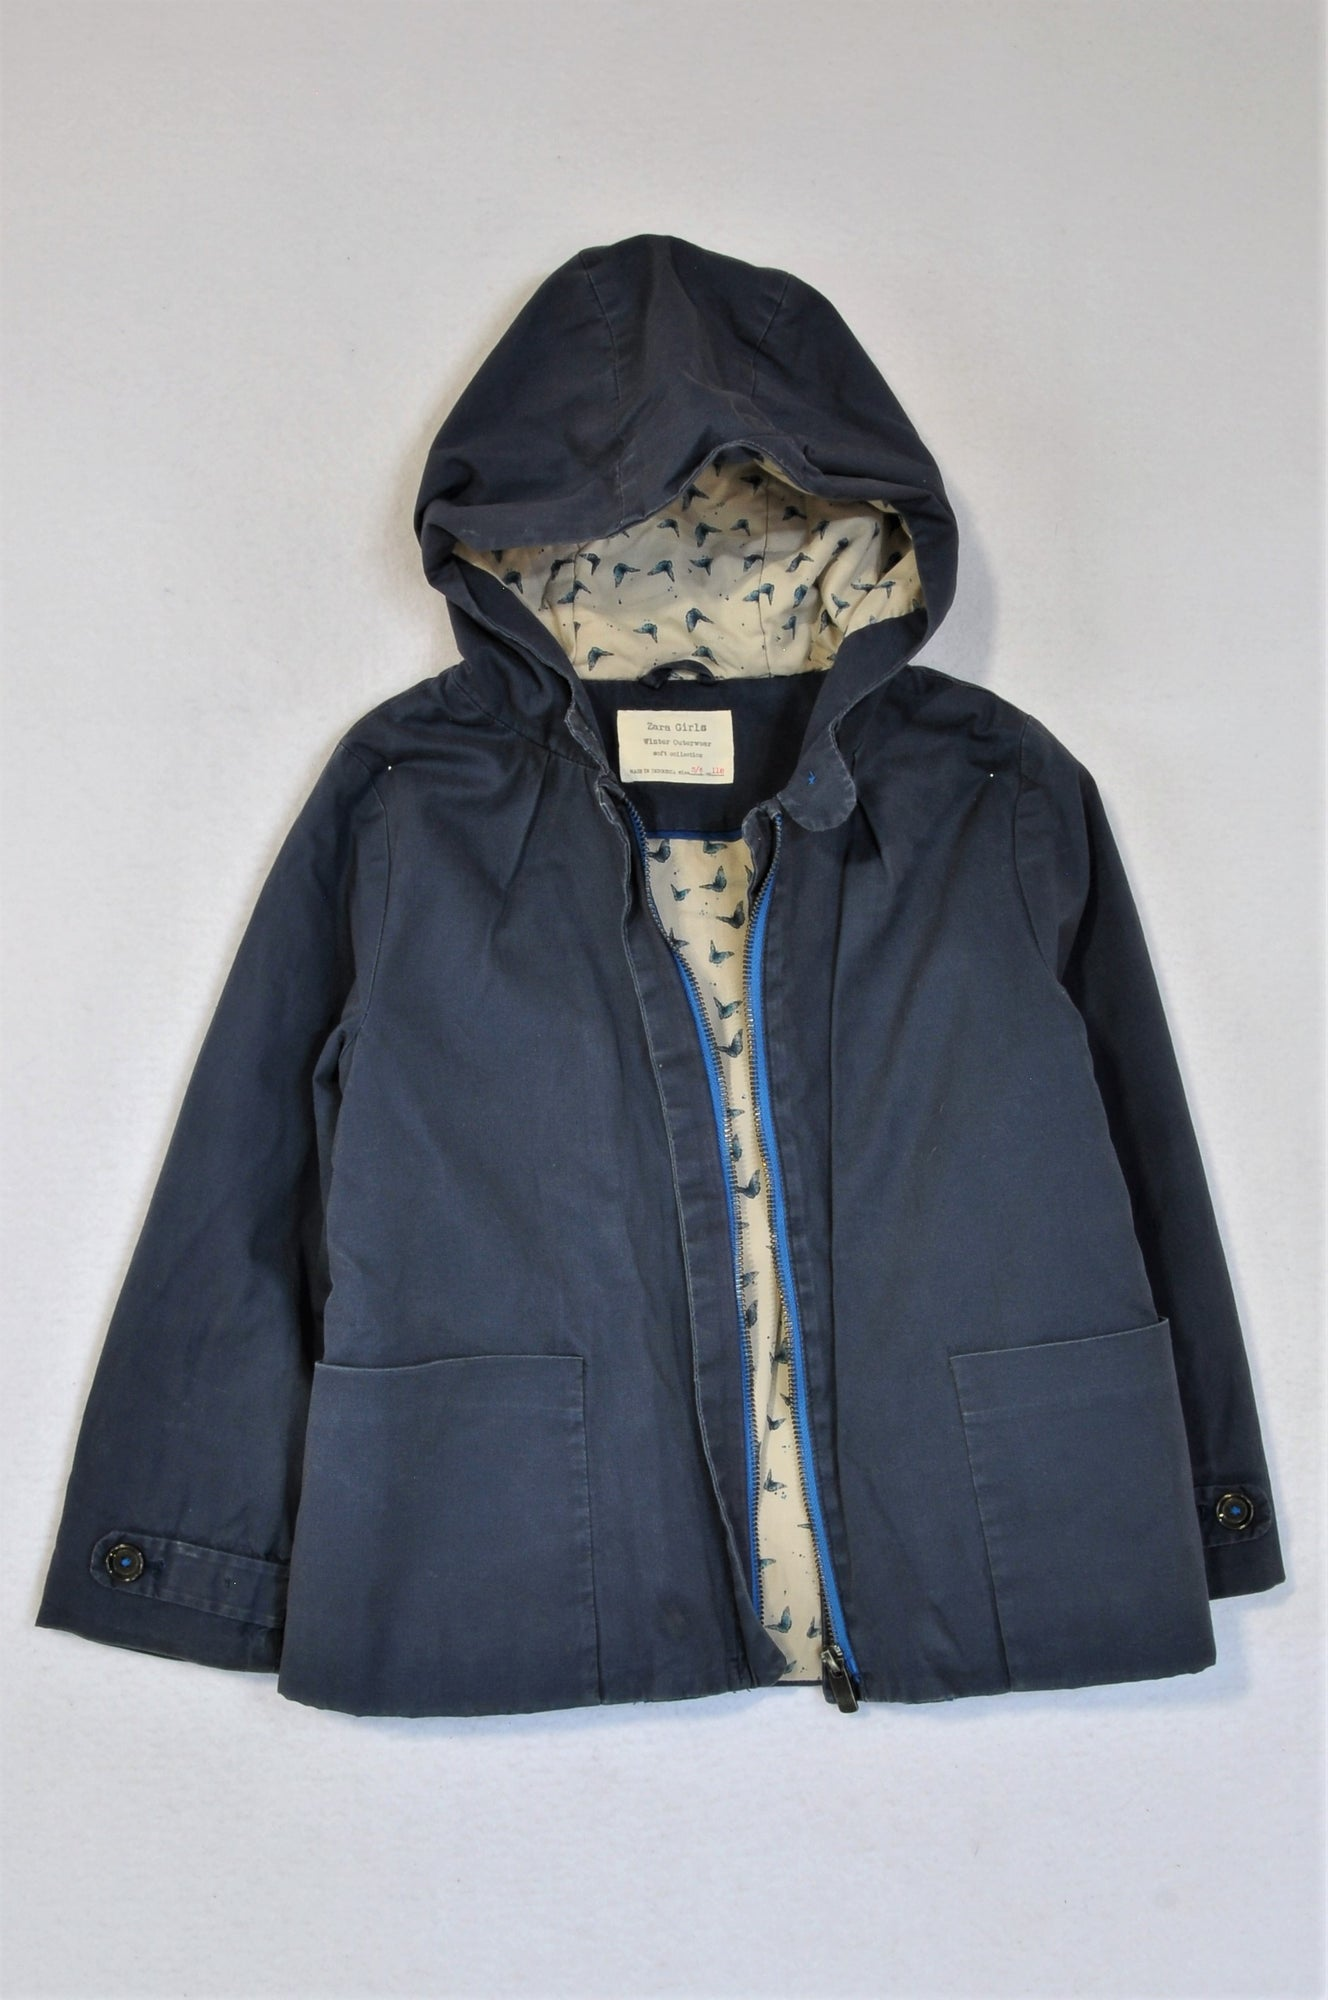 Zara Blue With Butterfly Lining Jacket Girls 5-6 years